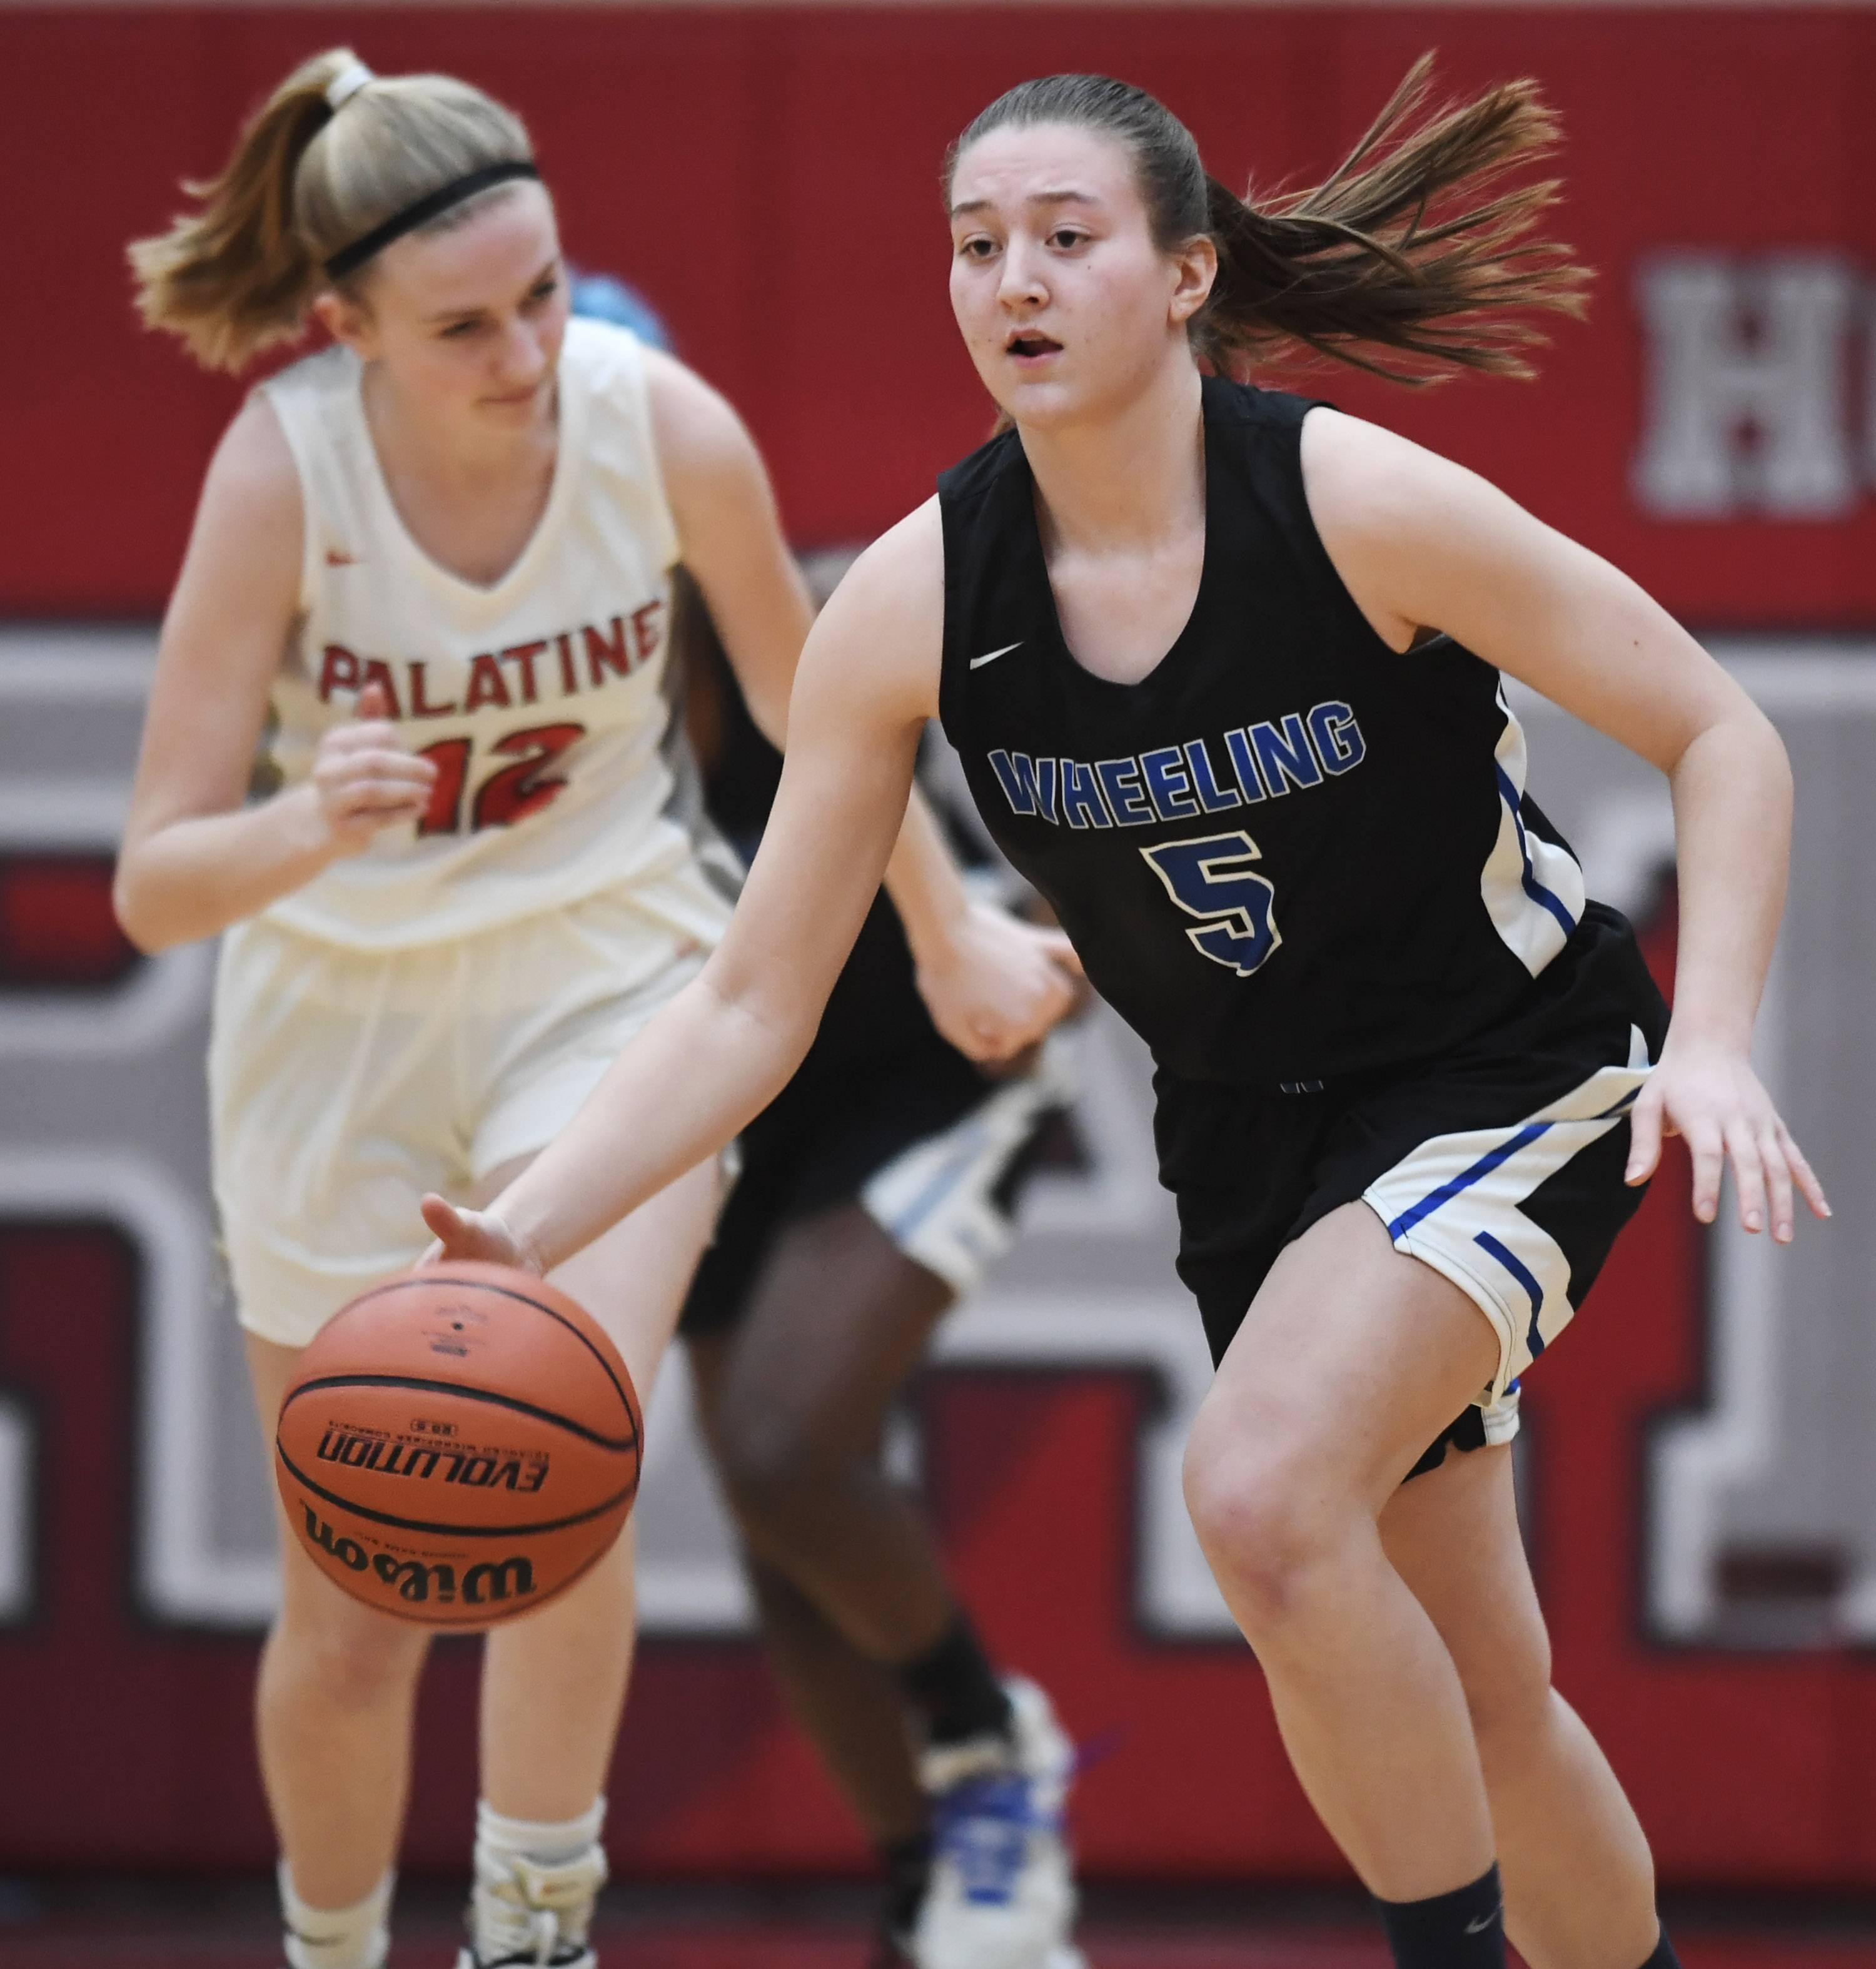 Wheeling's Sophia Stanke leads a fast break during Tuesday's game at Palatine.